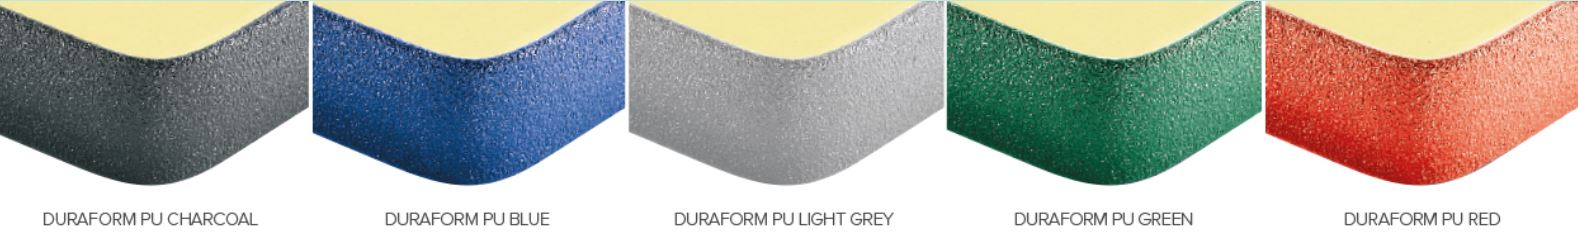 Duraform PU Edge Colour Options